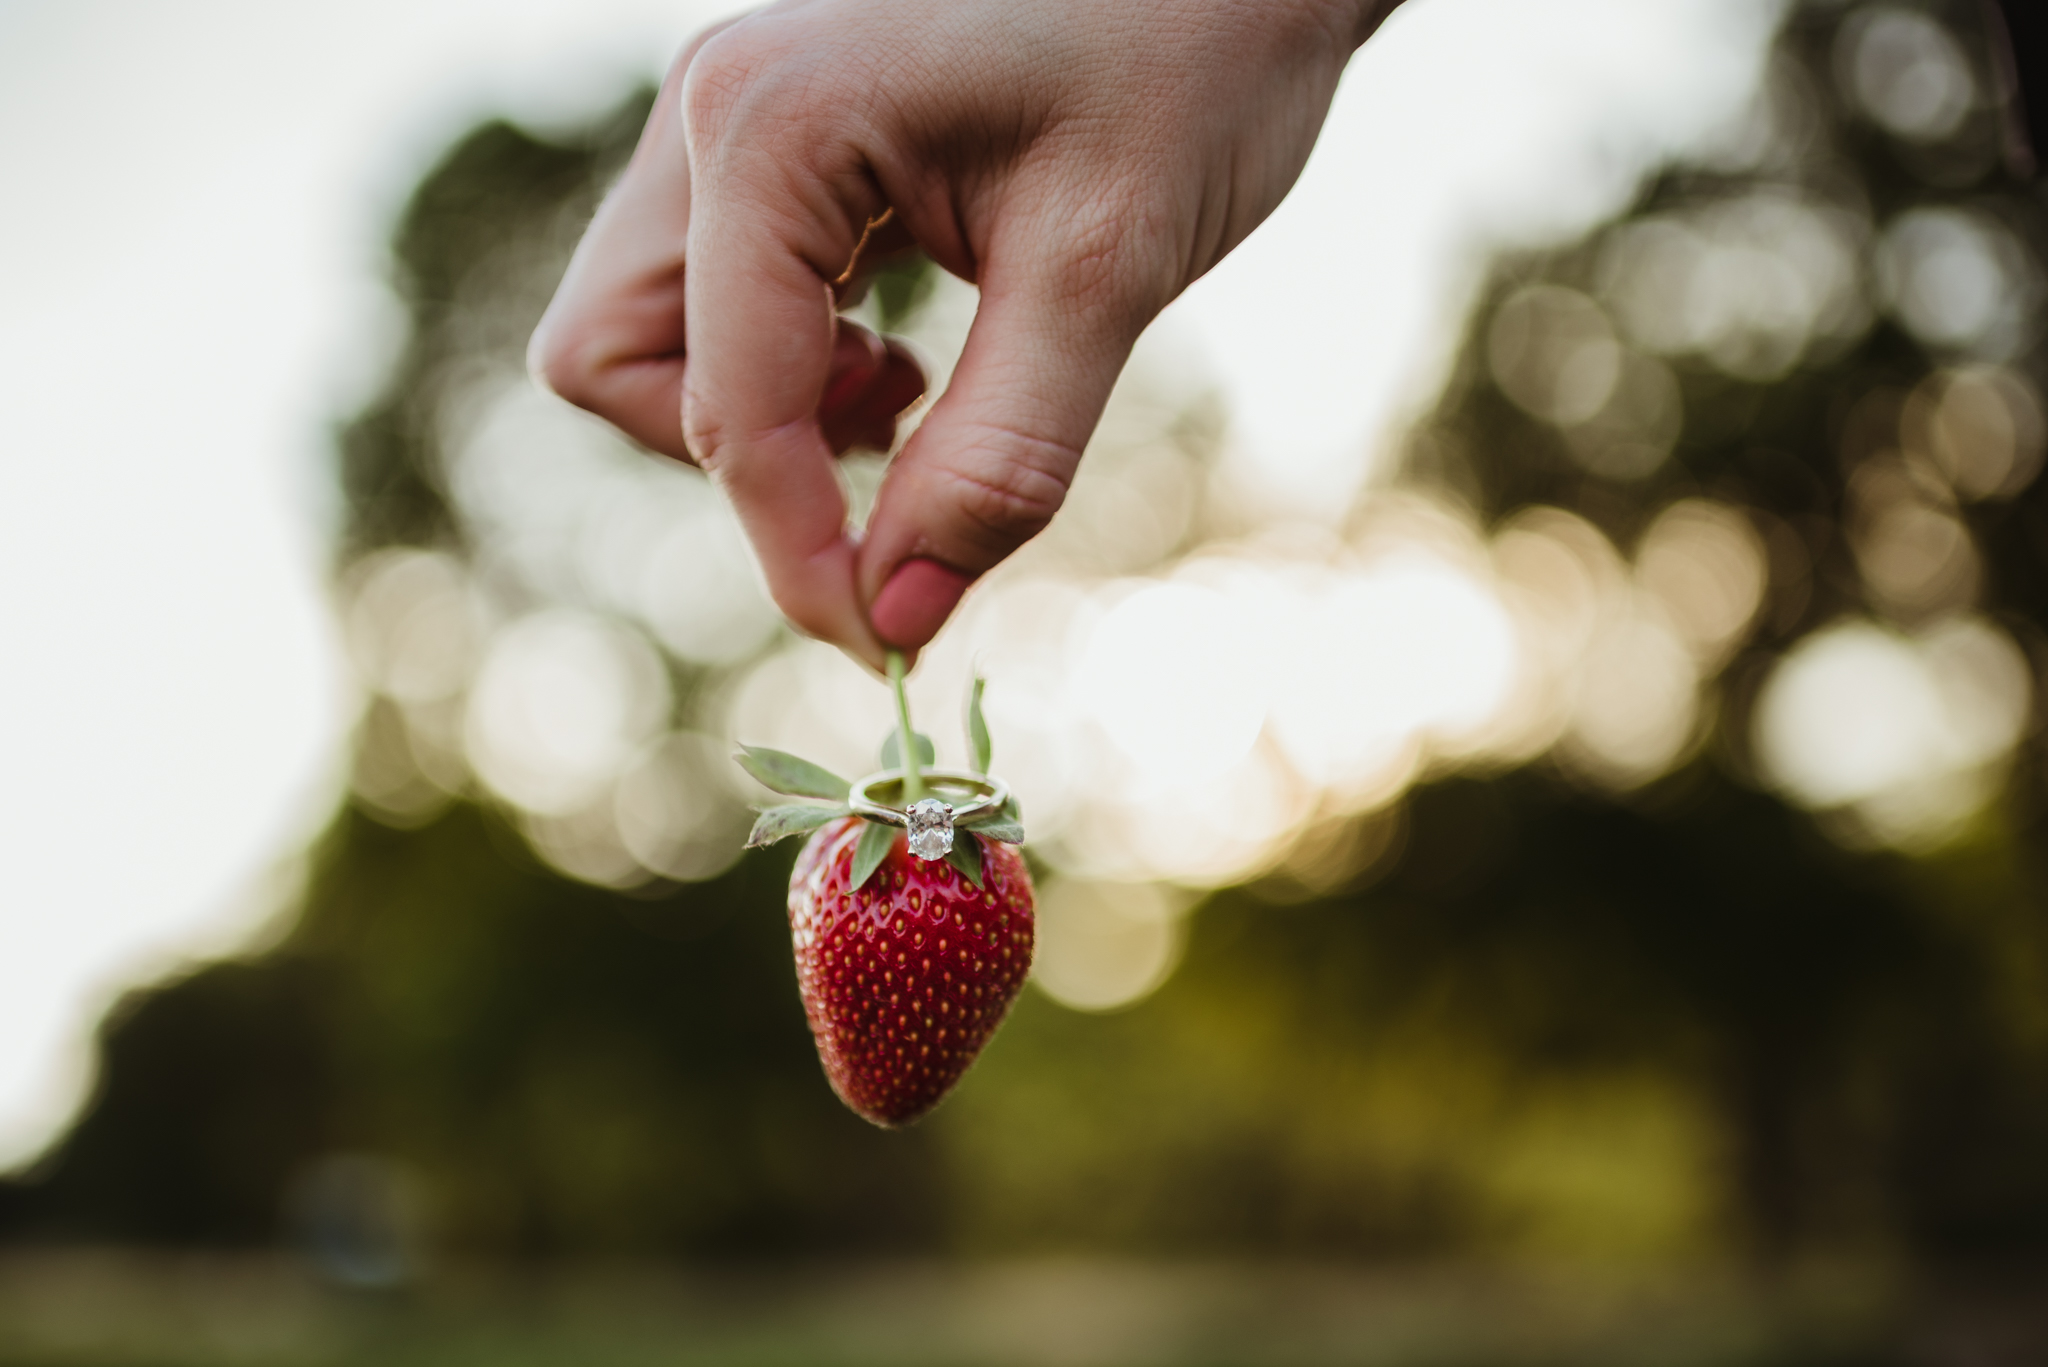 The bride to be shows off her engagement ring on a strawberry in the strawberry patch for their engagement pictures with Rose Trail Images at their family farm in Benson, North Carolina.